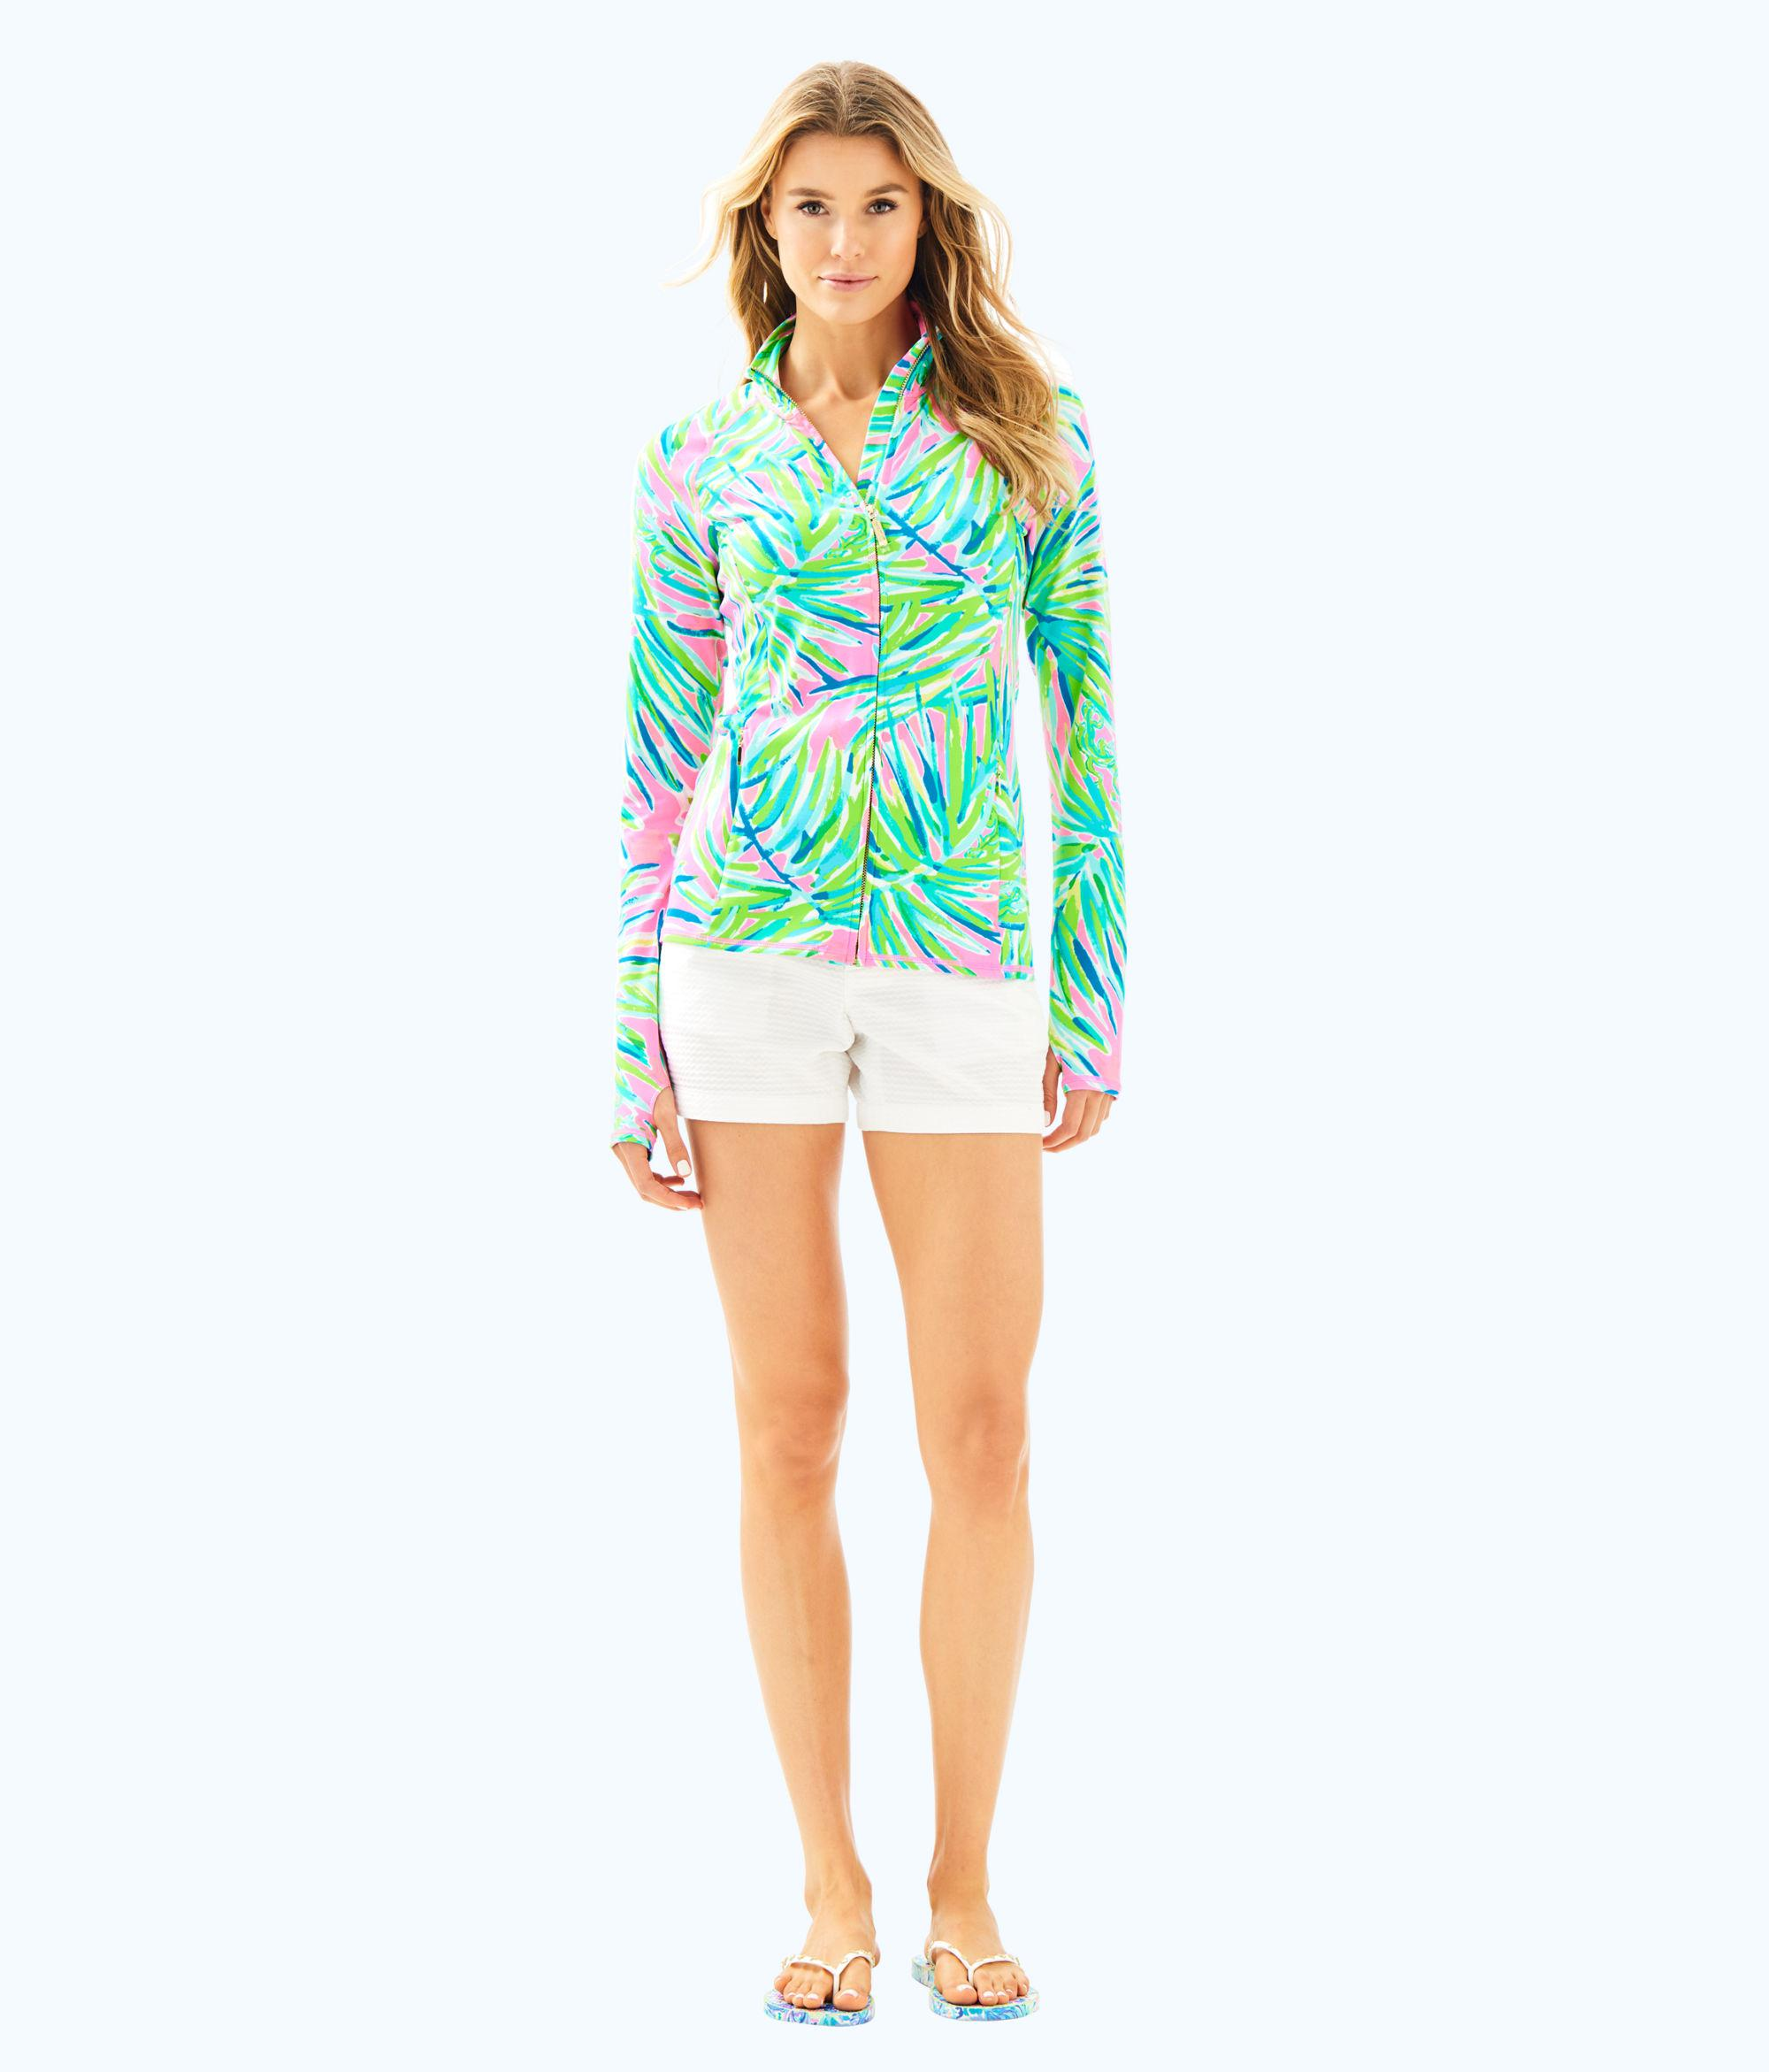 460ab648252a25 Gallery. Previously sold at: Lilly Pulitzer · Women's Blouson Jackets  Women's Pink ...